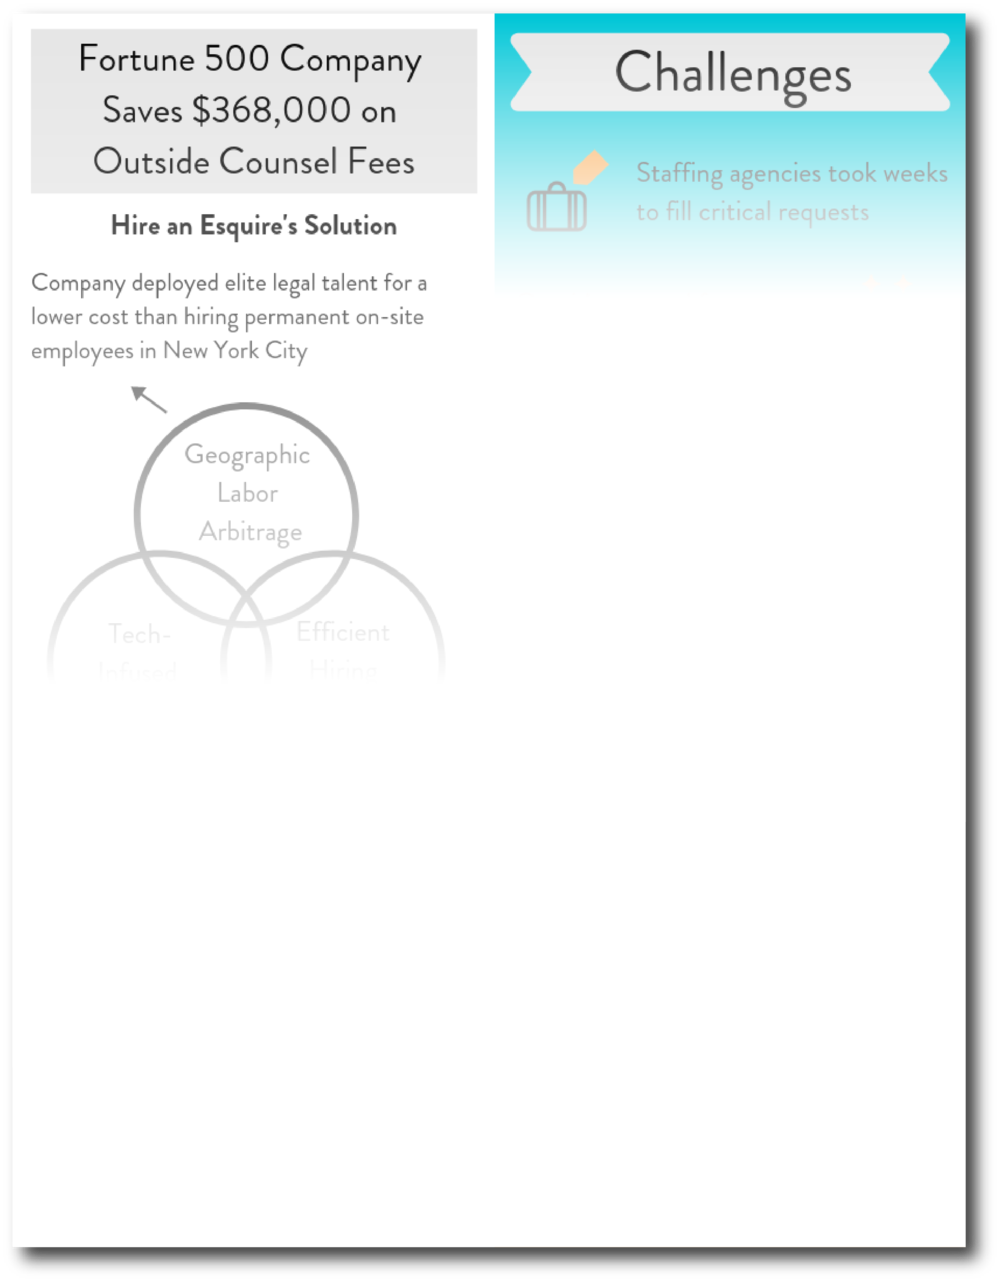 F 500 Company Saves $368,000 on Outside Counsel Fees - • Examination of how the Hire an Esquire process creates a successful placement rate well above market average• Guide to how our alternative staffing model can unlock administrative time• Insight into how we successfully provide a broad range of legal talent to minimize costs while providing effective support